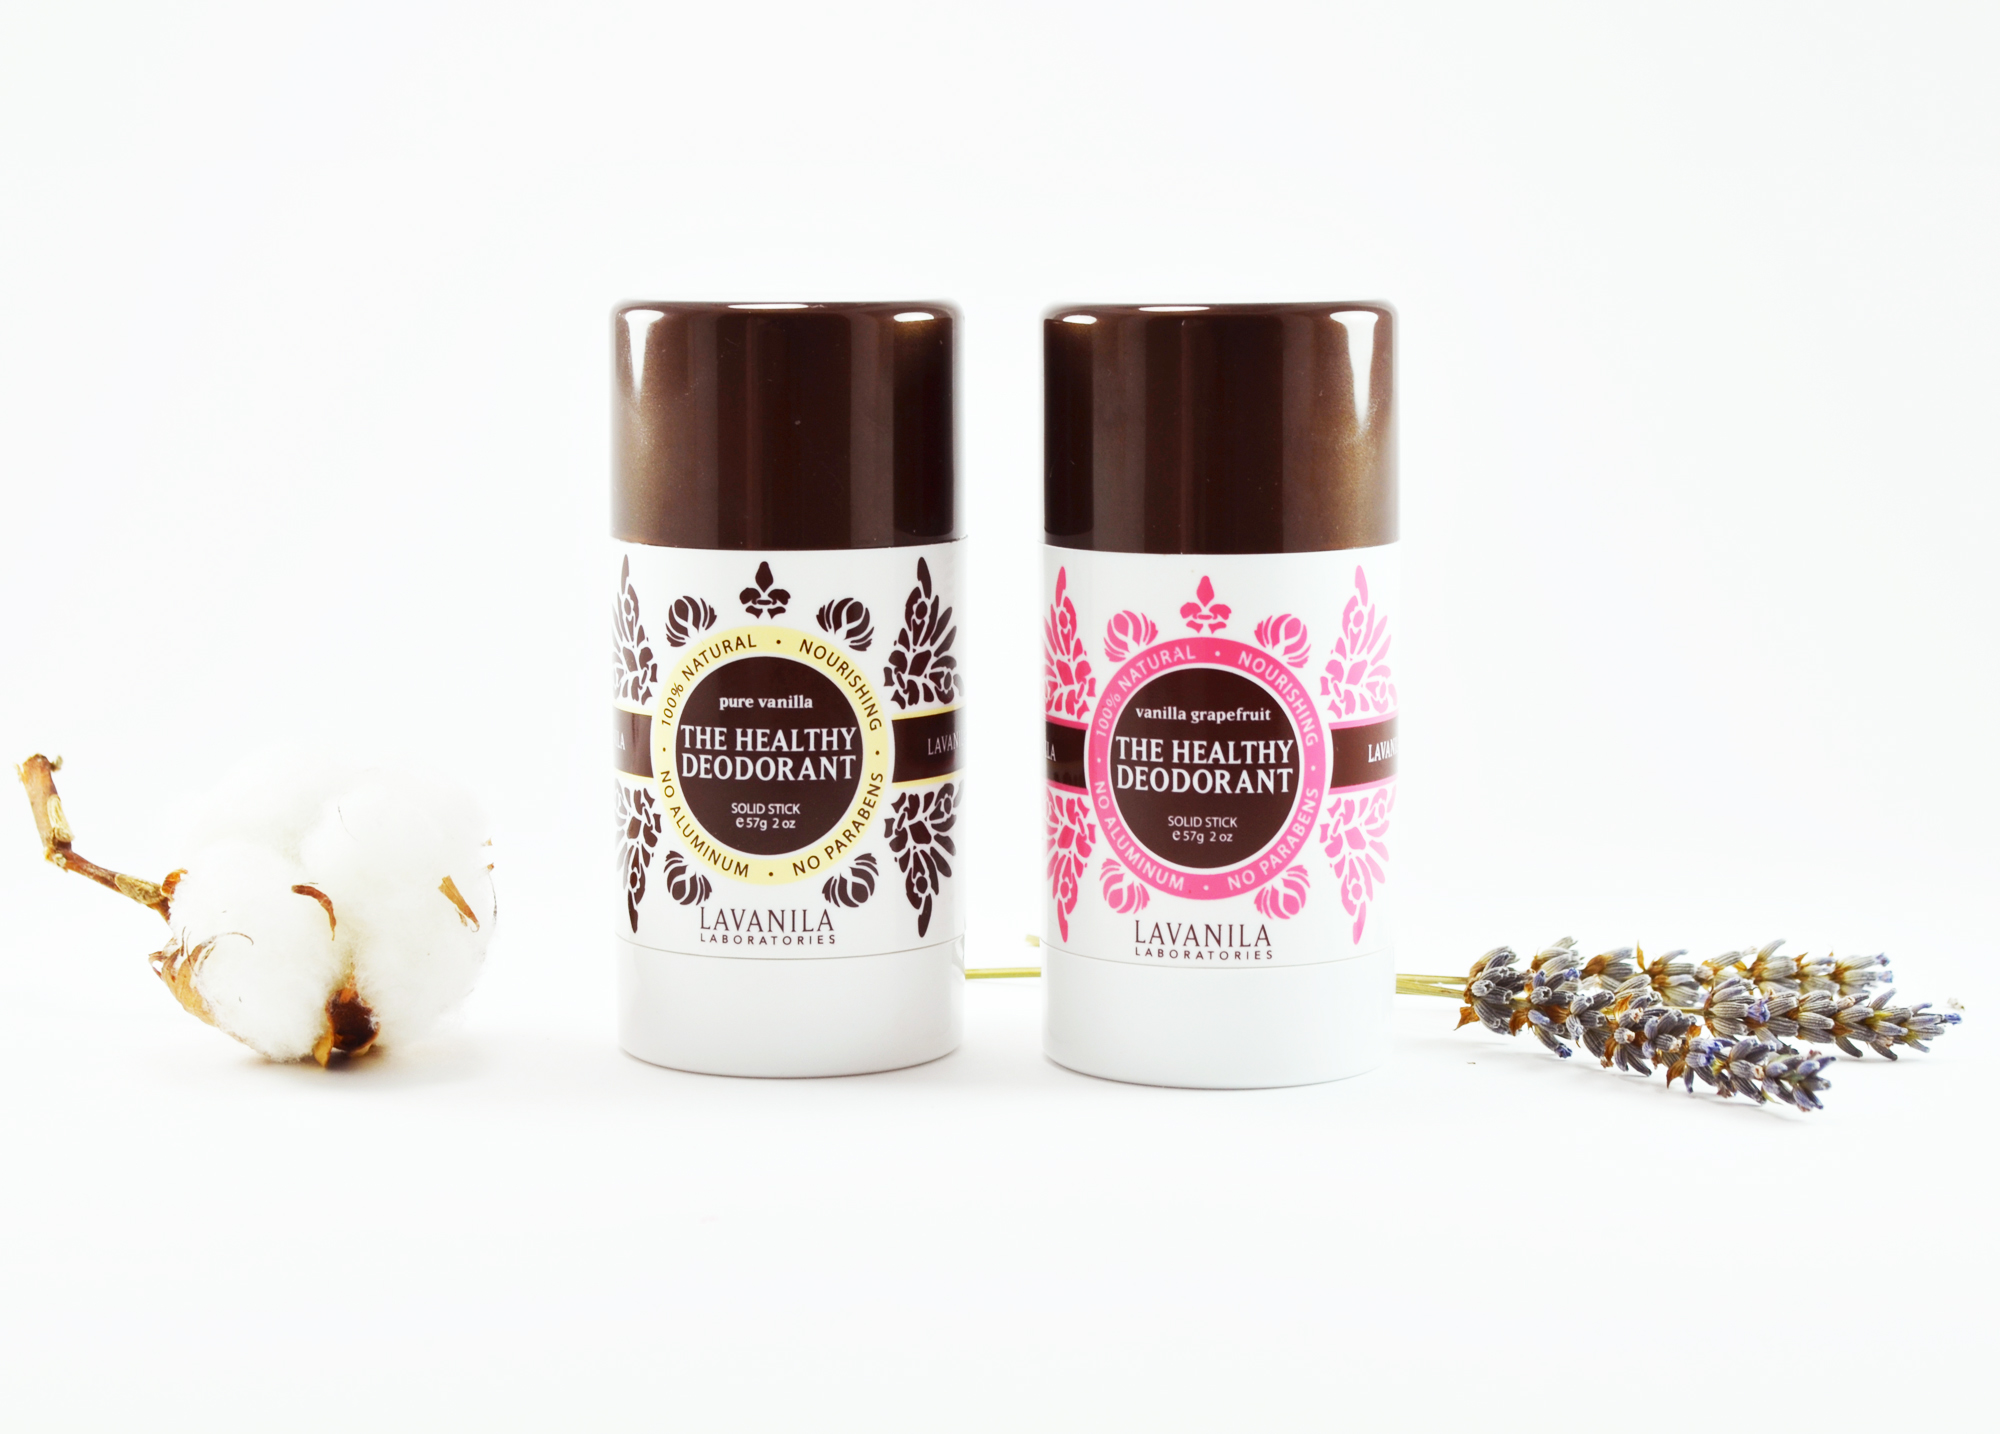 the-healthy-deodorant-lavanila-avis-revue